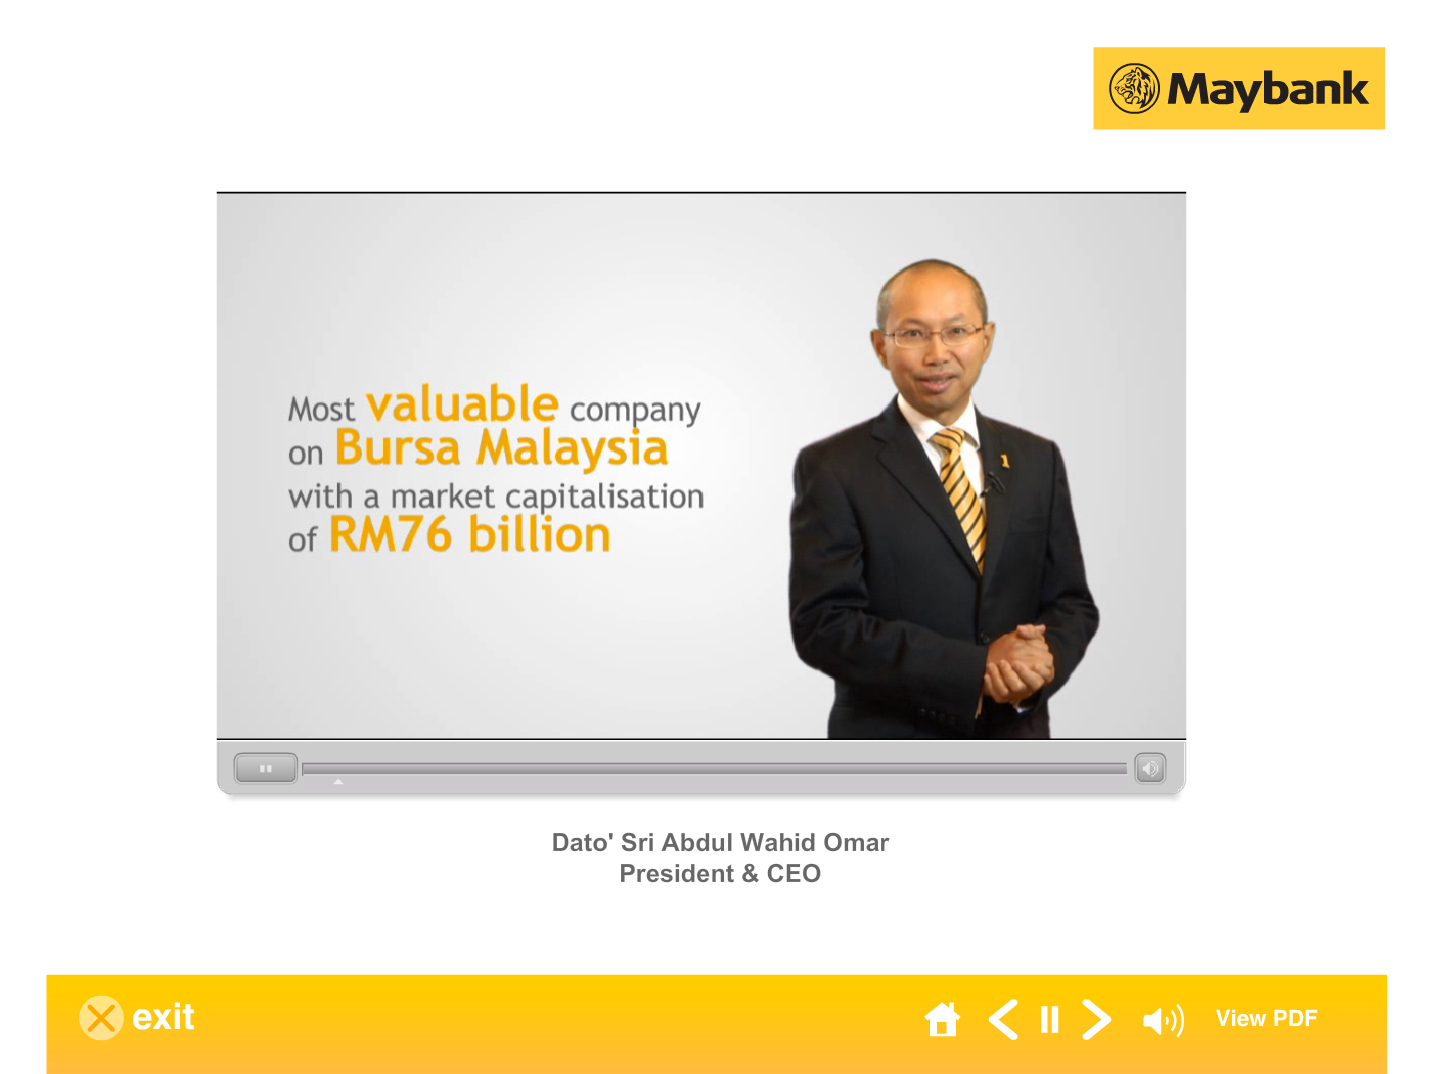 Maybank Annual Report 2012 Interactive Multimedia